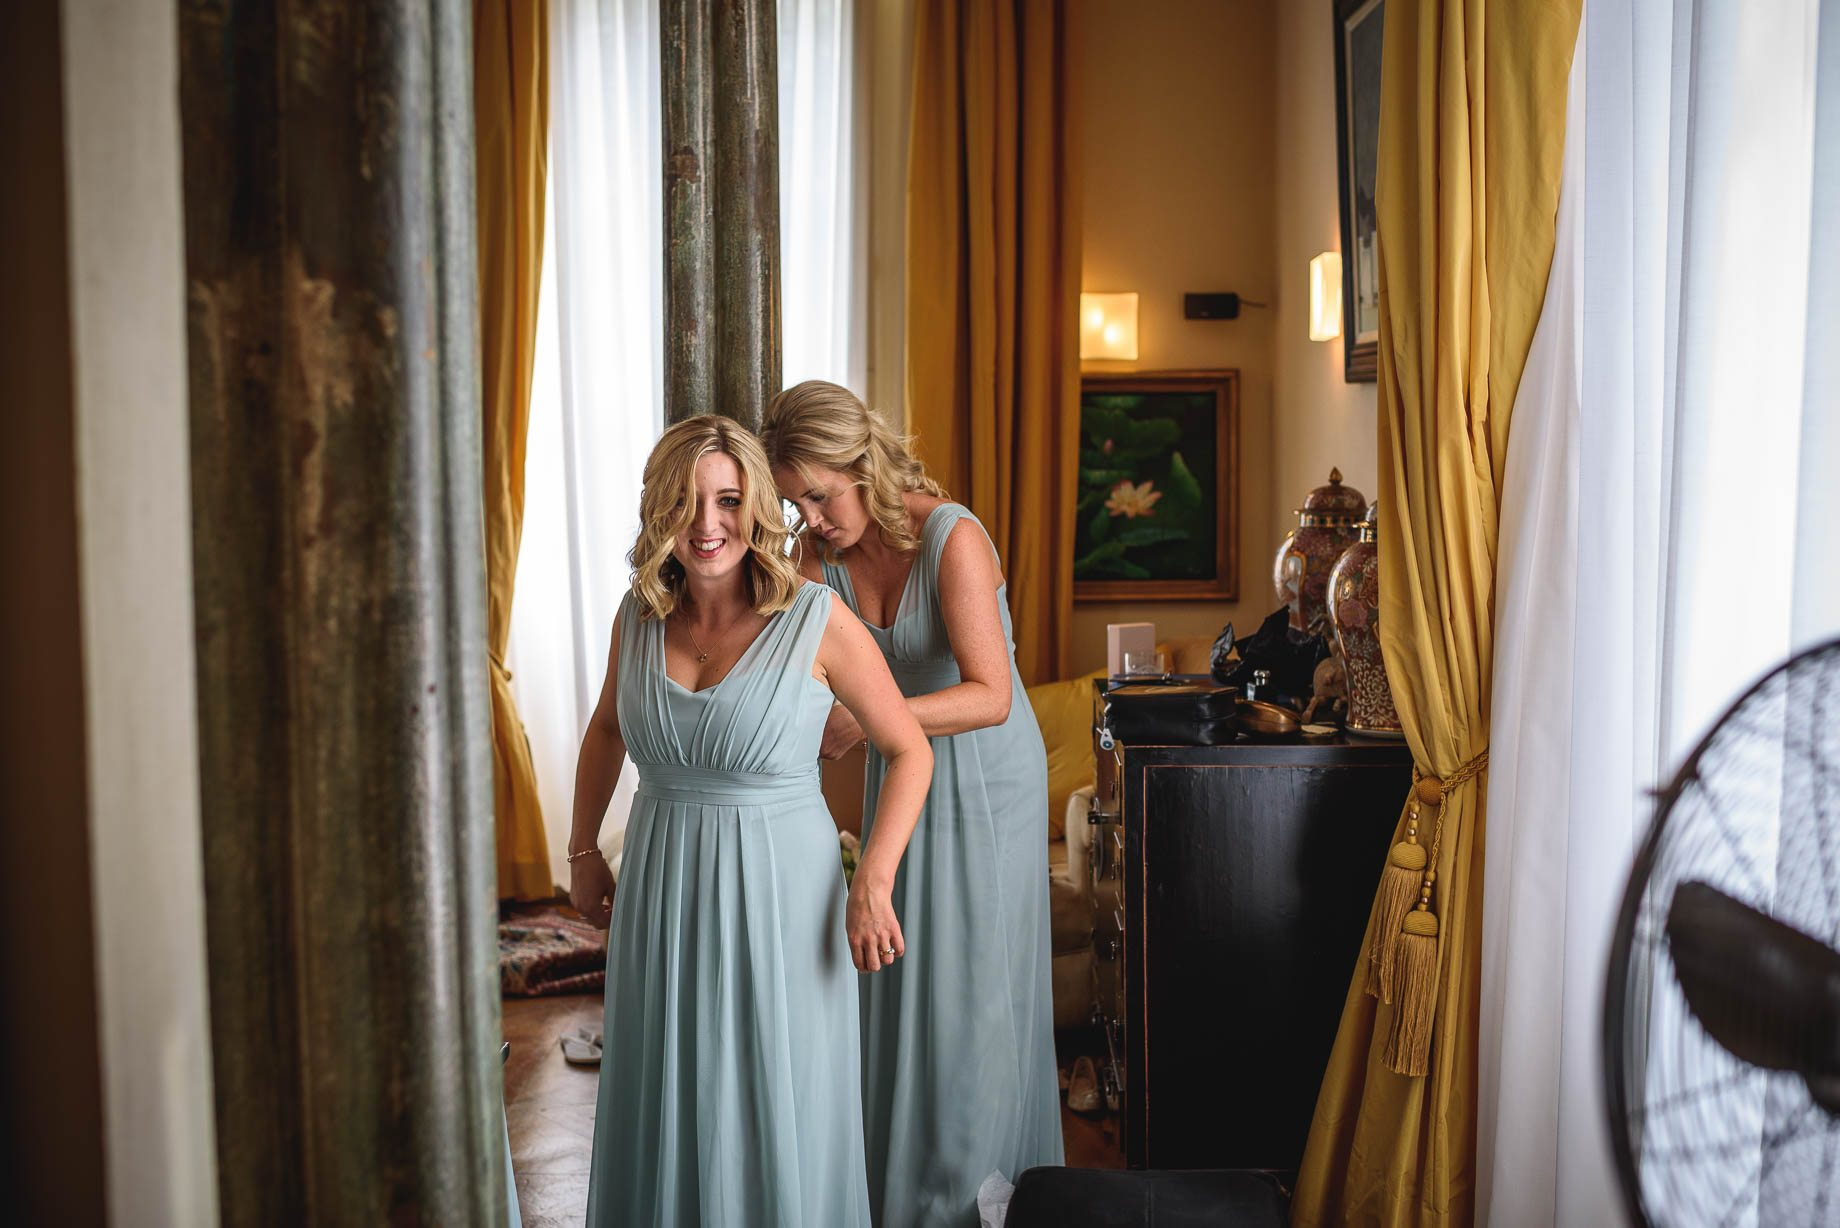 Tuscany wedding photography - Roisin and Moubin - Guy Collier Photography (79 of 251)